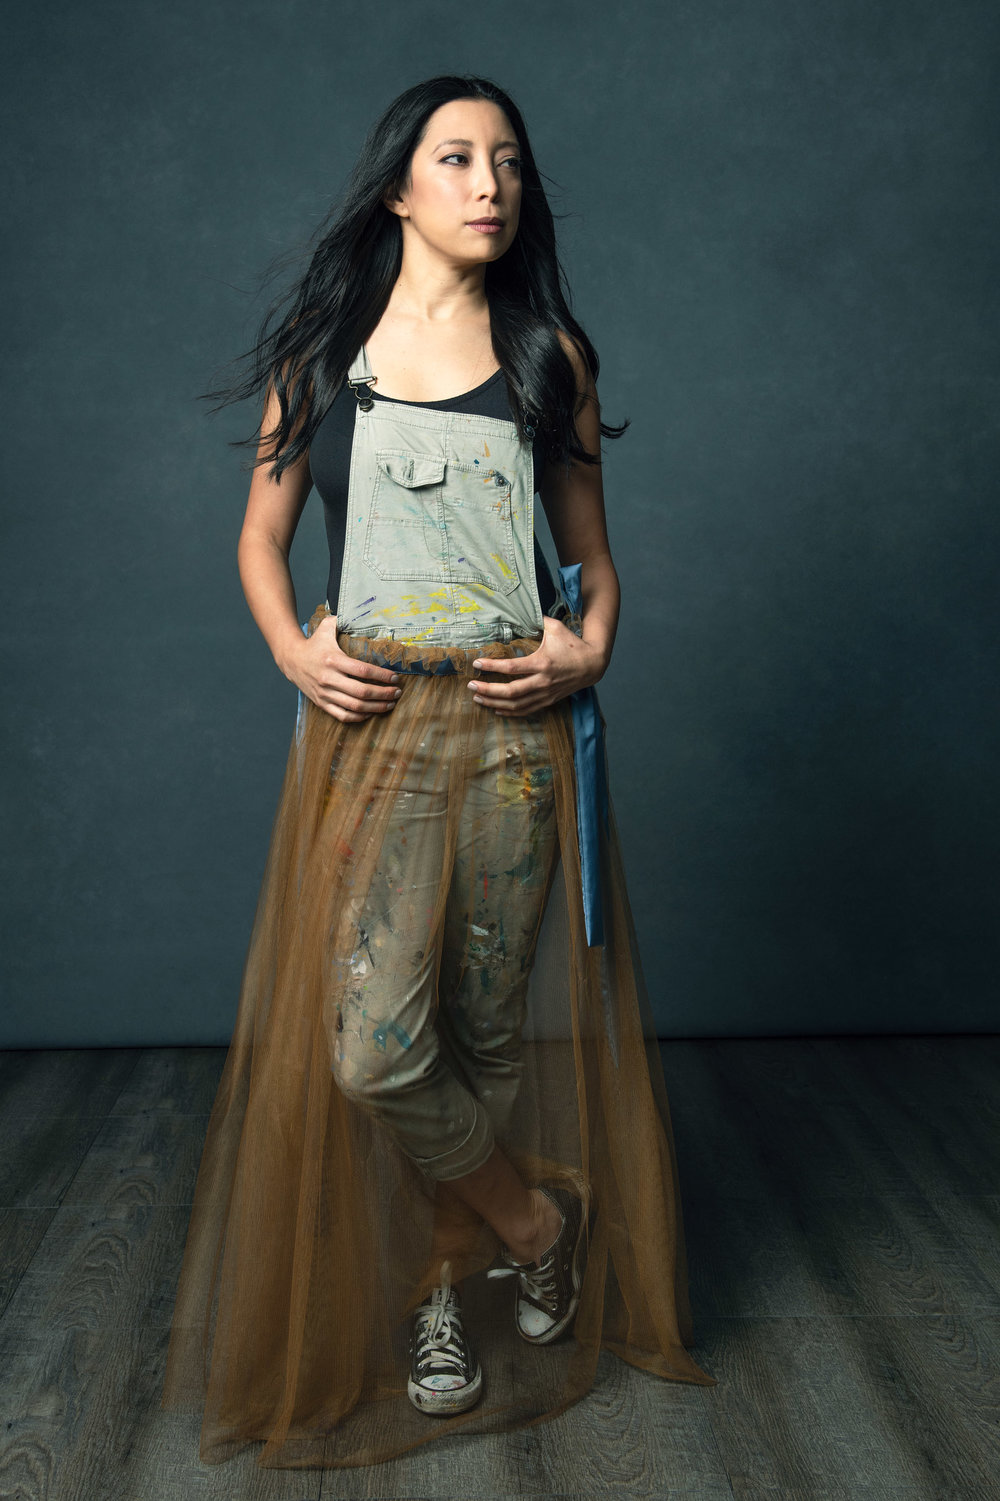 The Egg Woman - Rosana Lagos in the Etheral Skirt from our Flourish colletion.